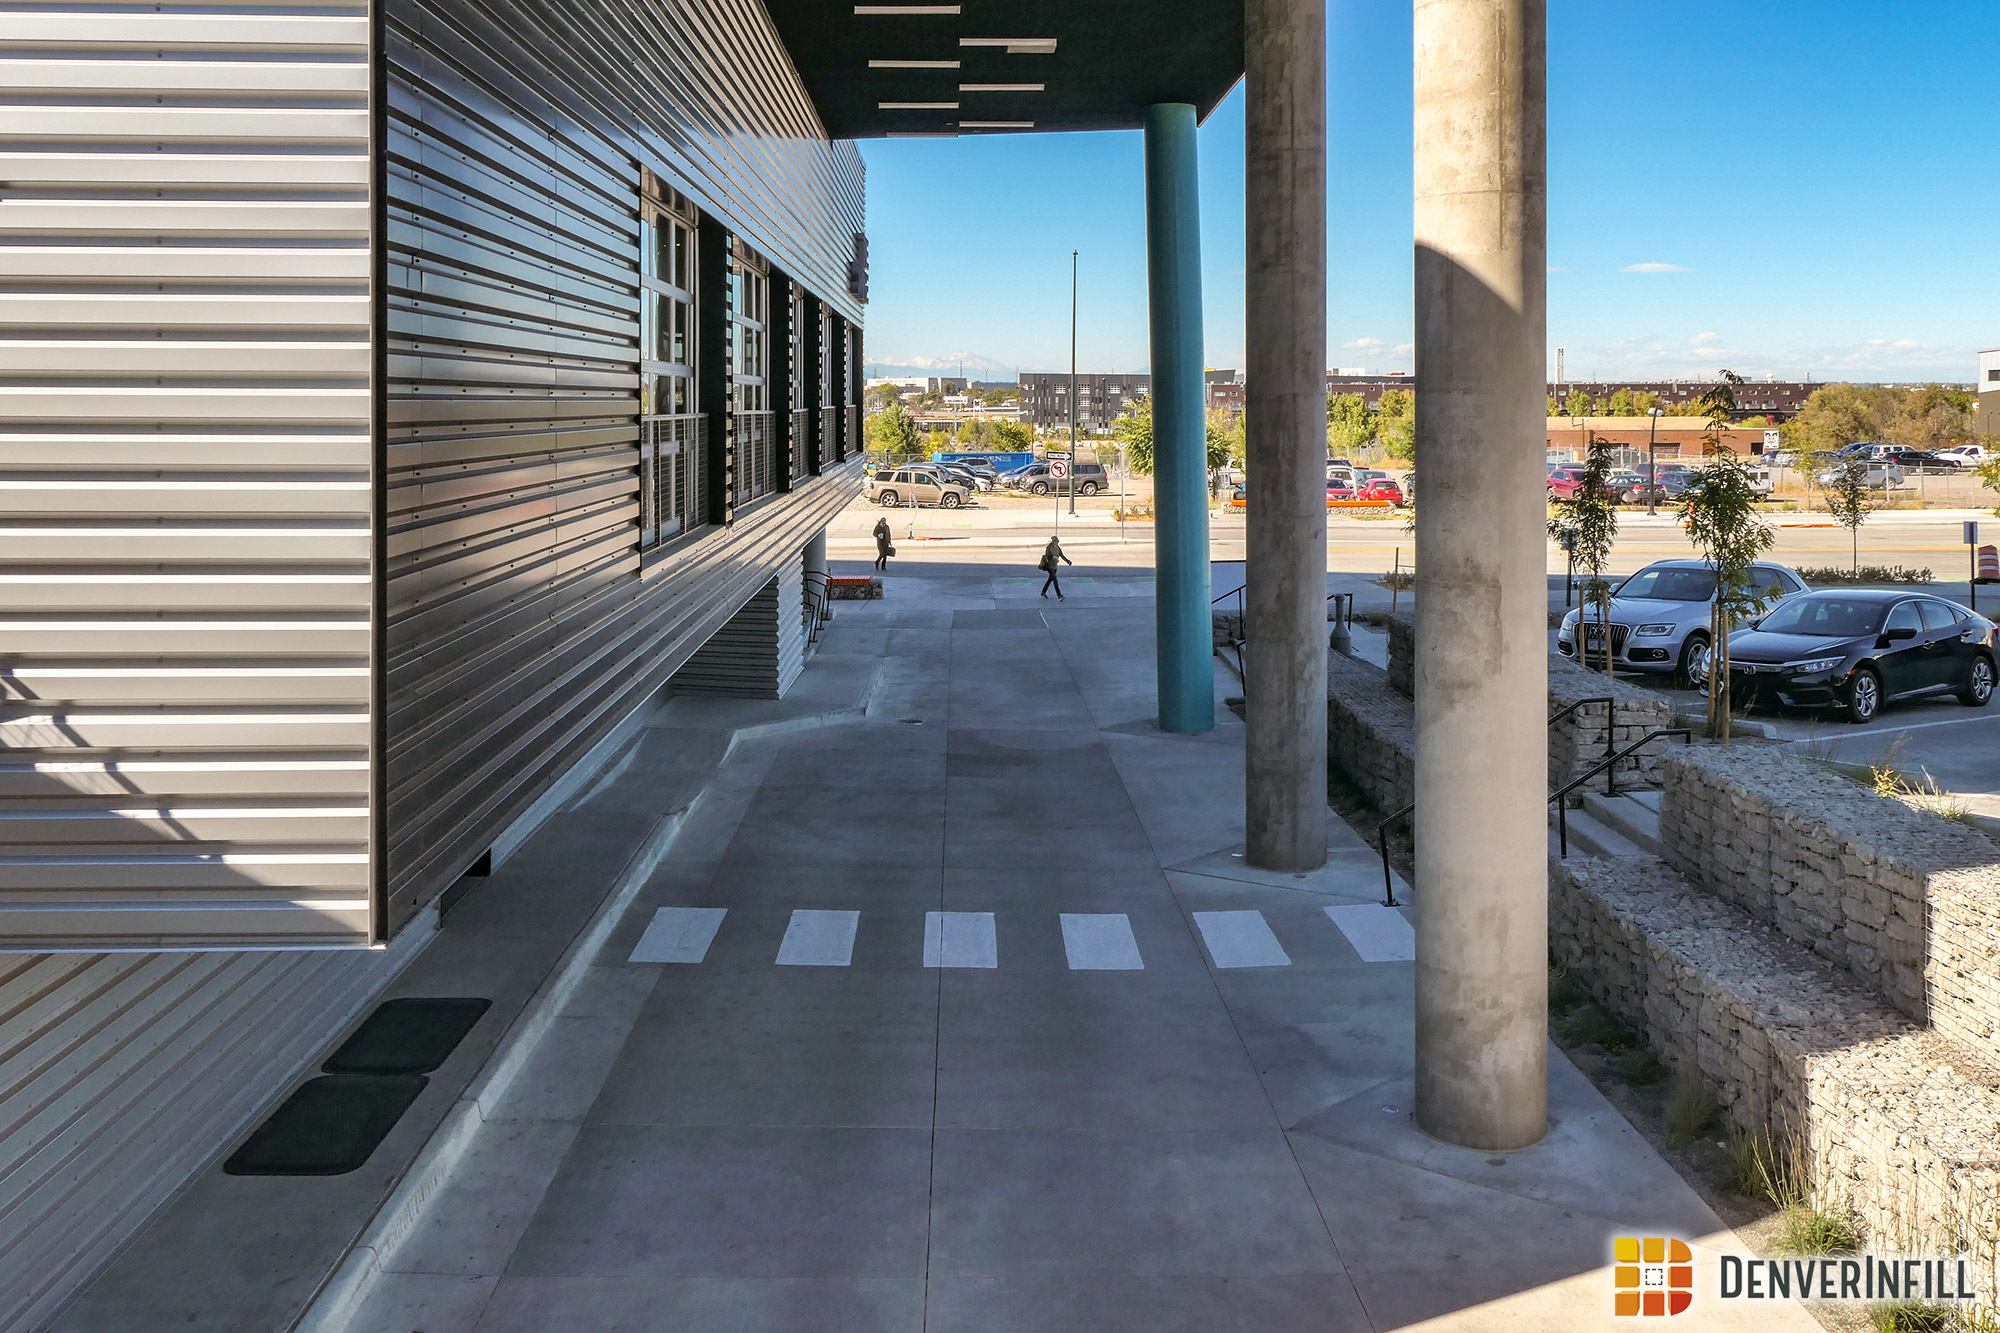 The Source Hotel's valet and parking garage access below the pedestrian walkway